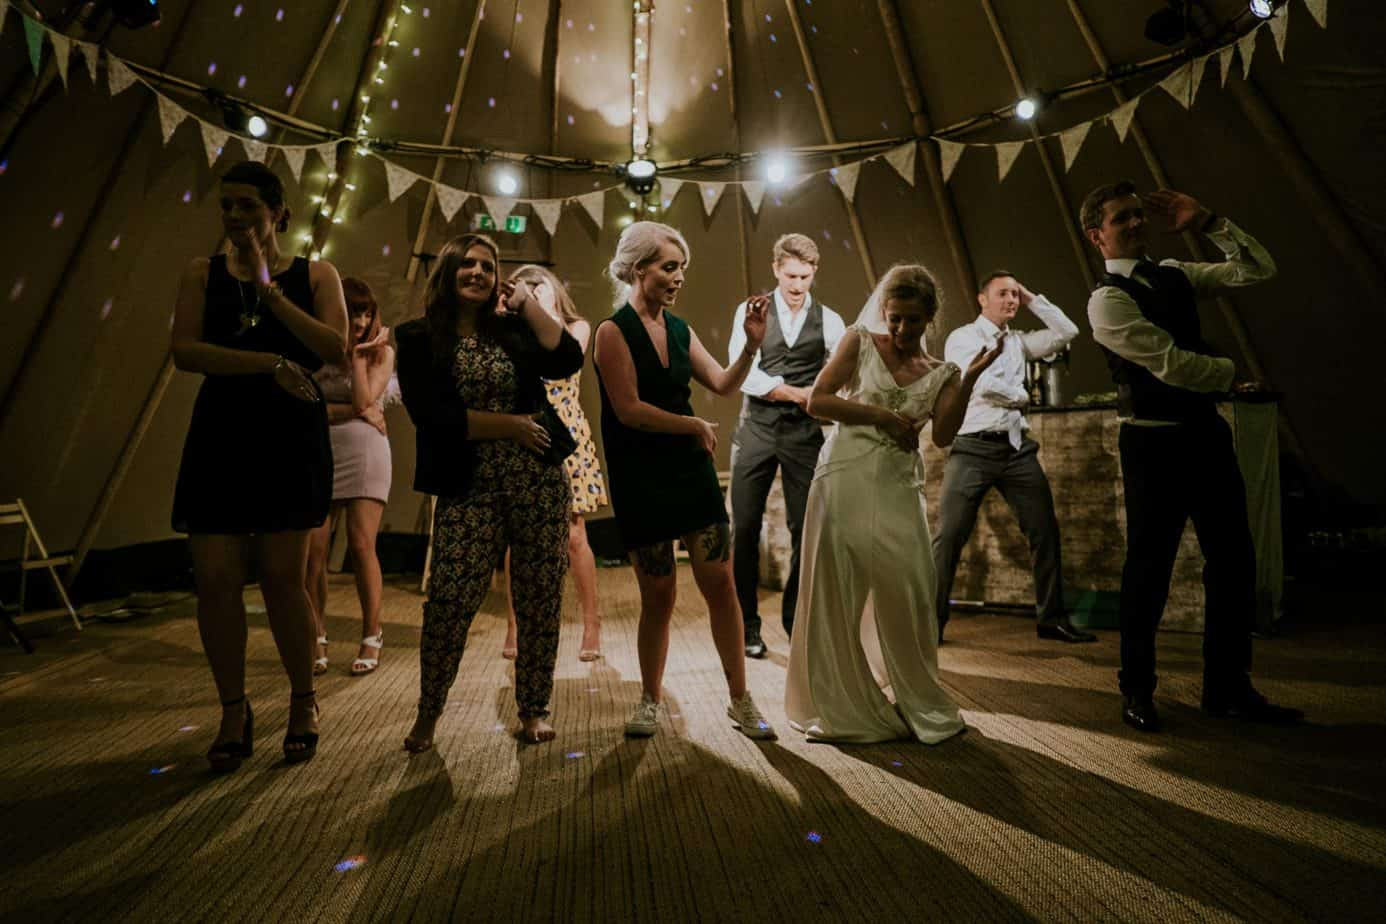 Group of people at a wedding dancing